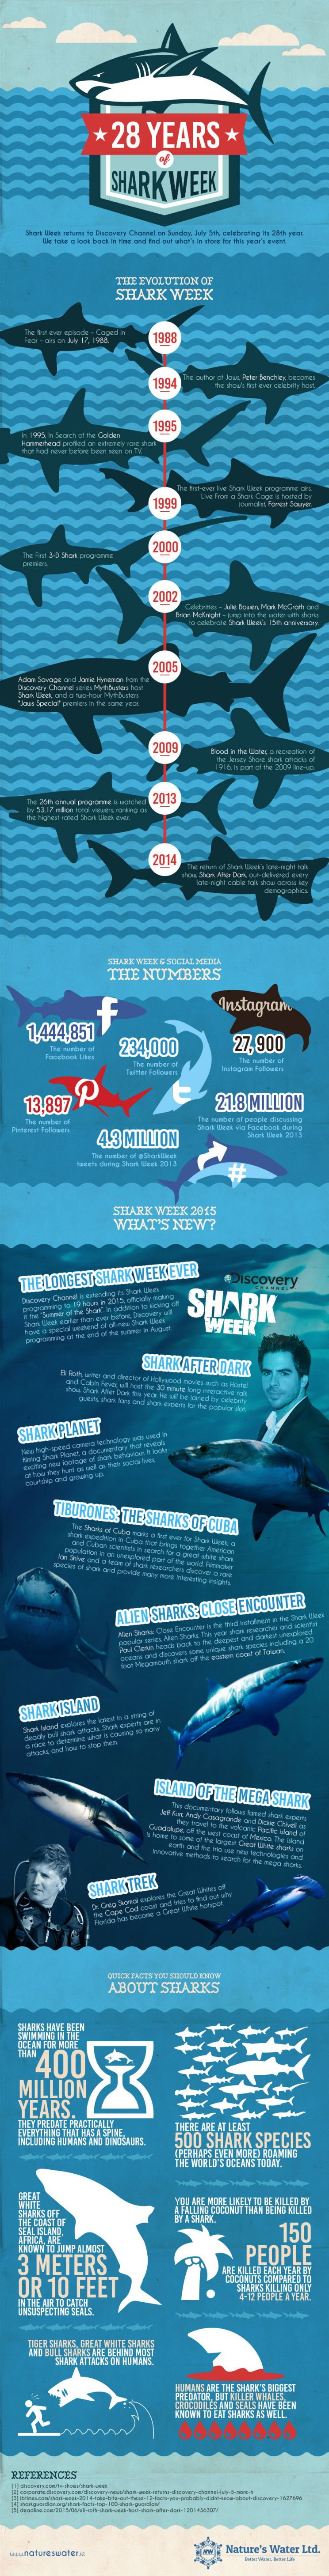 28 years of Shark Week